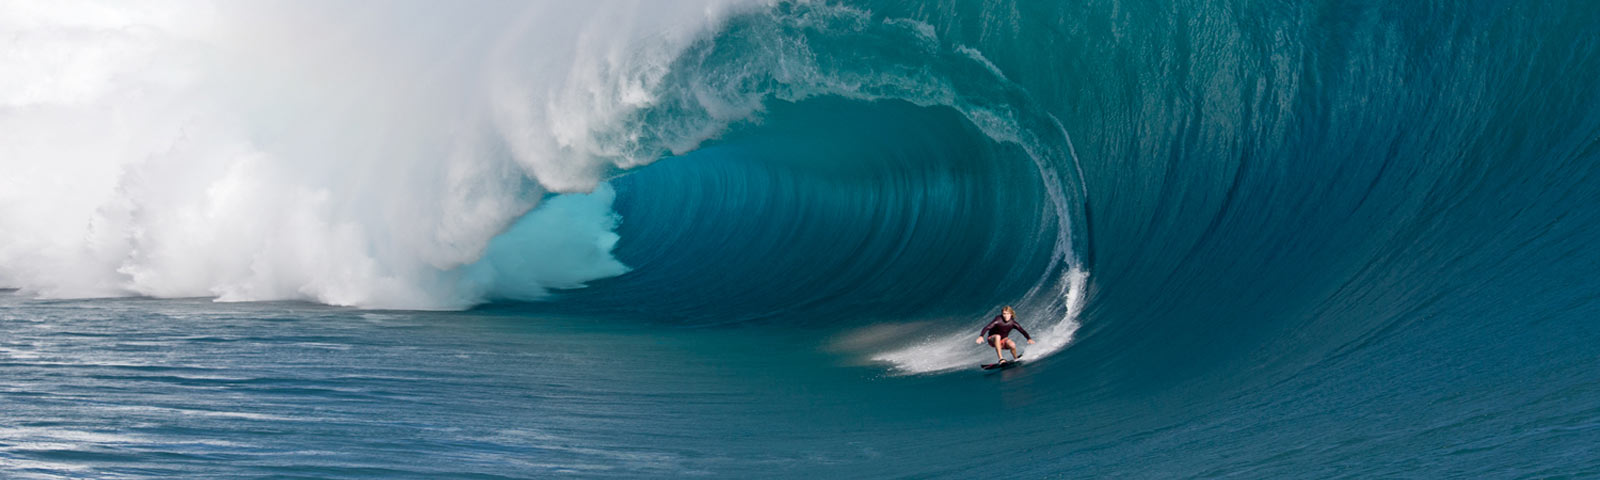 Ocean Adventures with Mark Healey - Ultimate Surf Tour